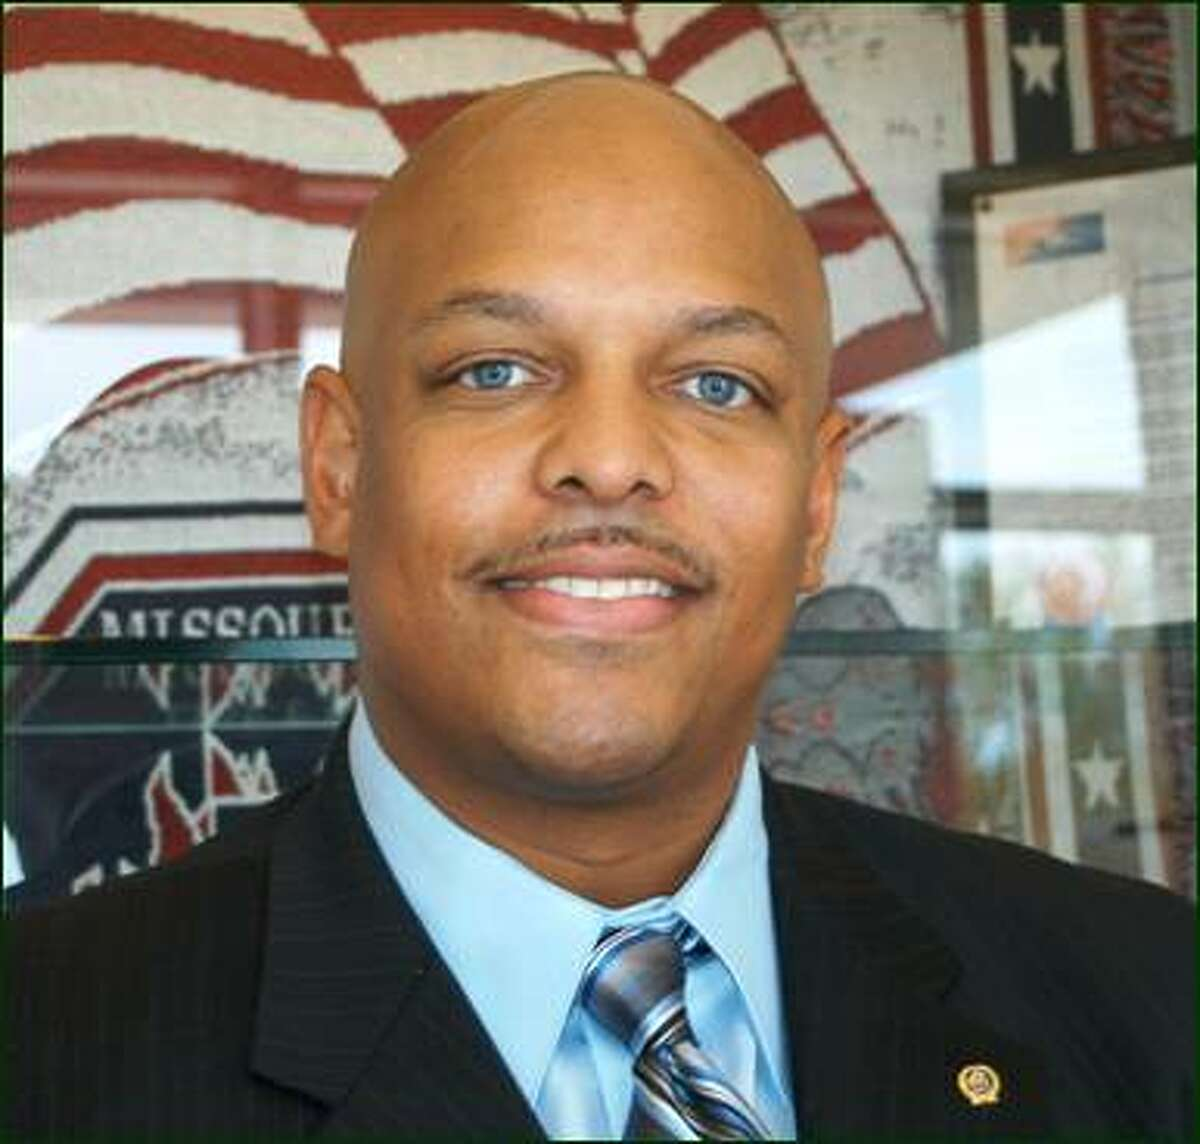 Joel Fitzgerald will become the chief of police in Allentown, Pa.